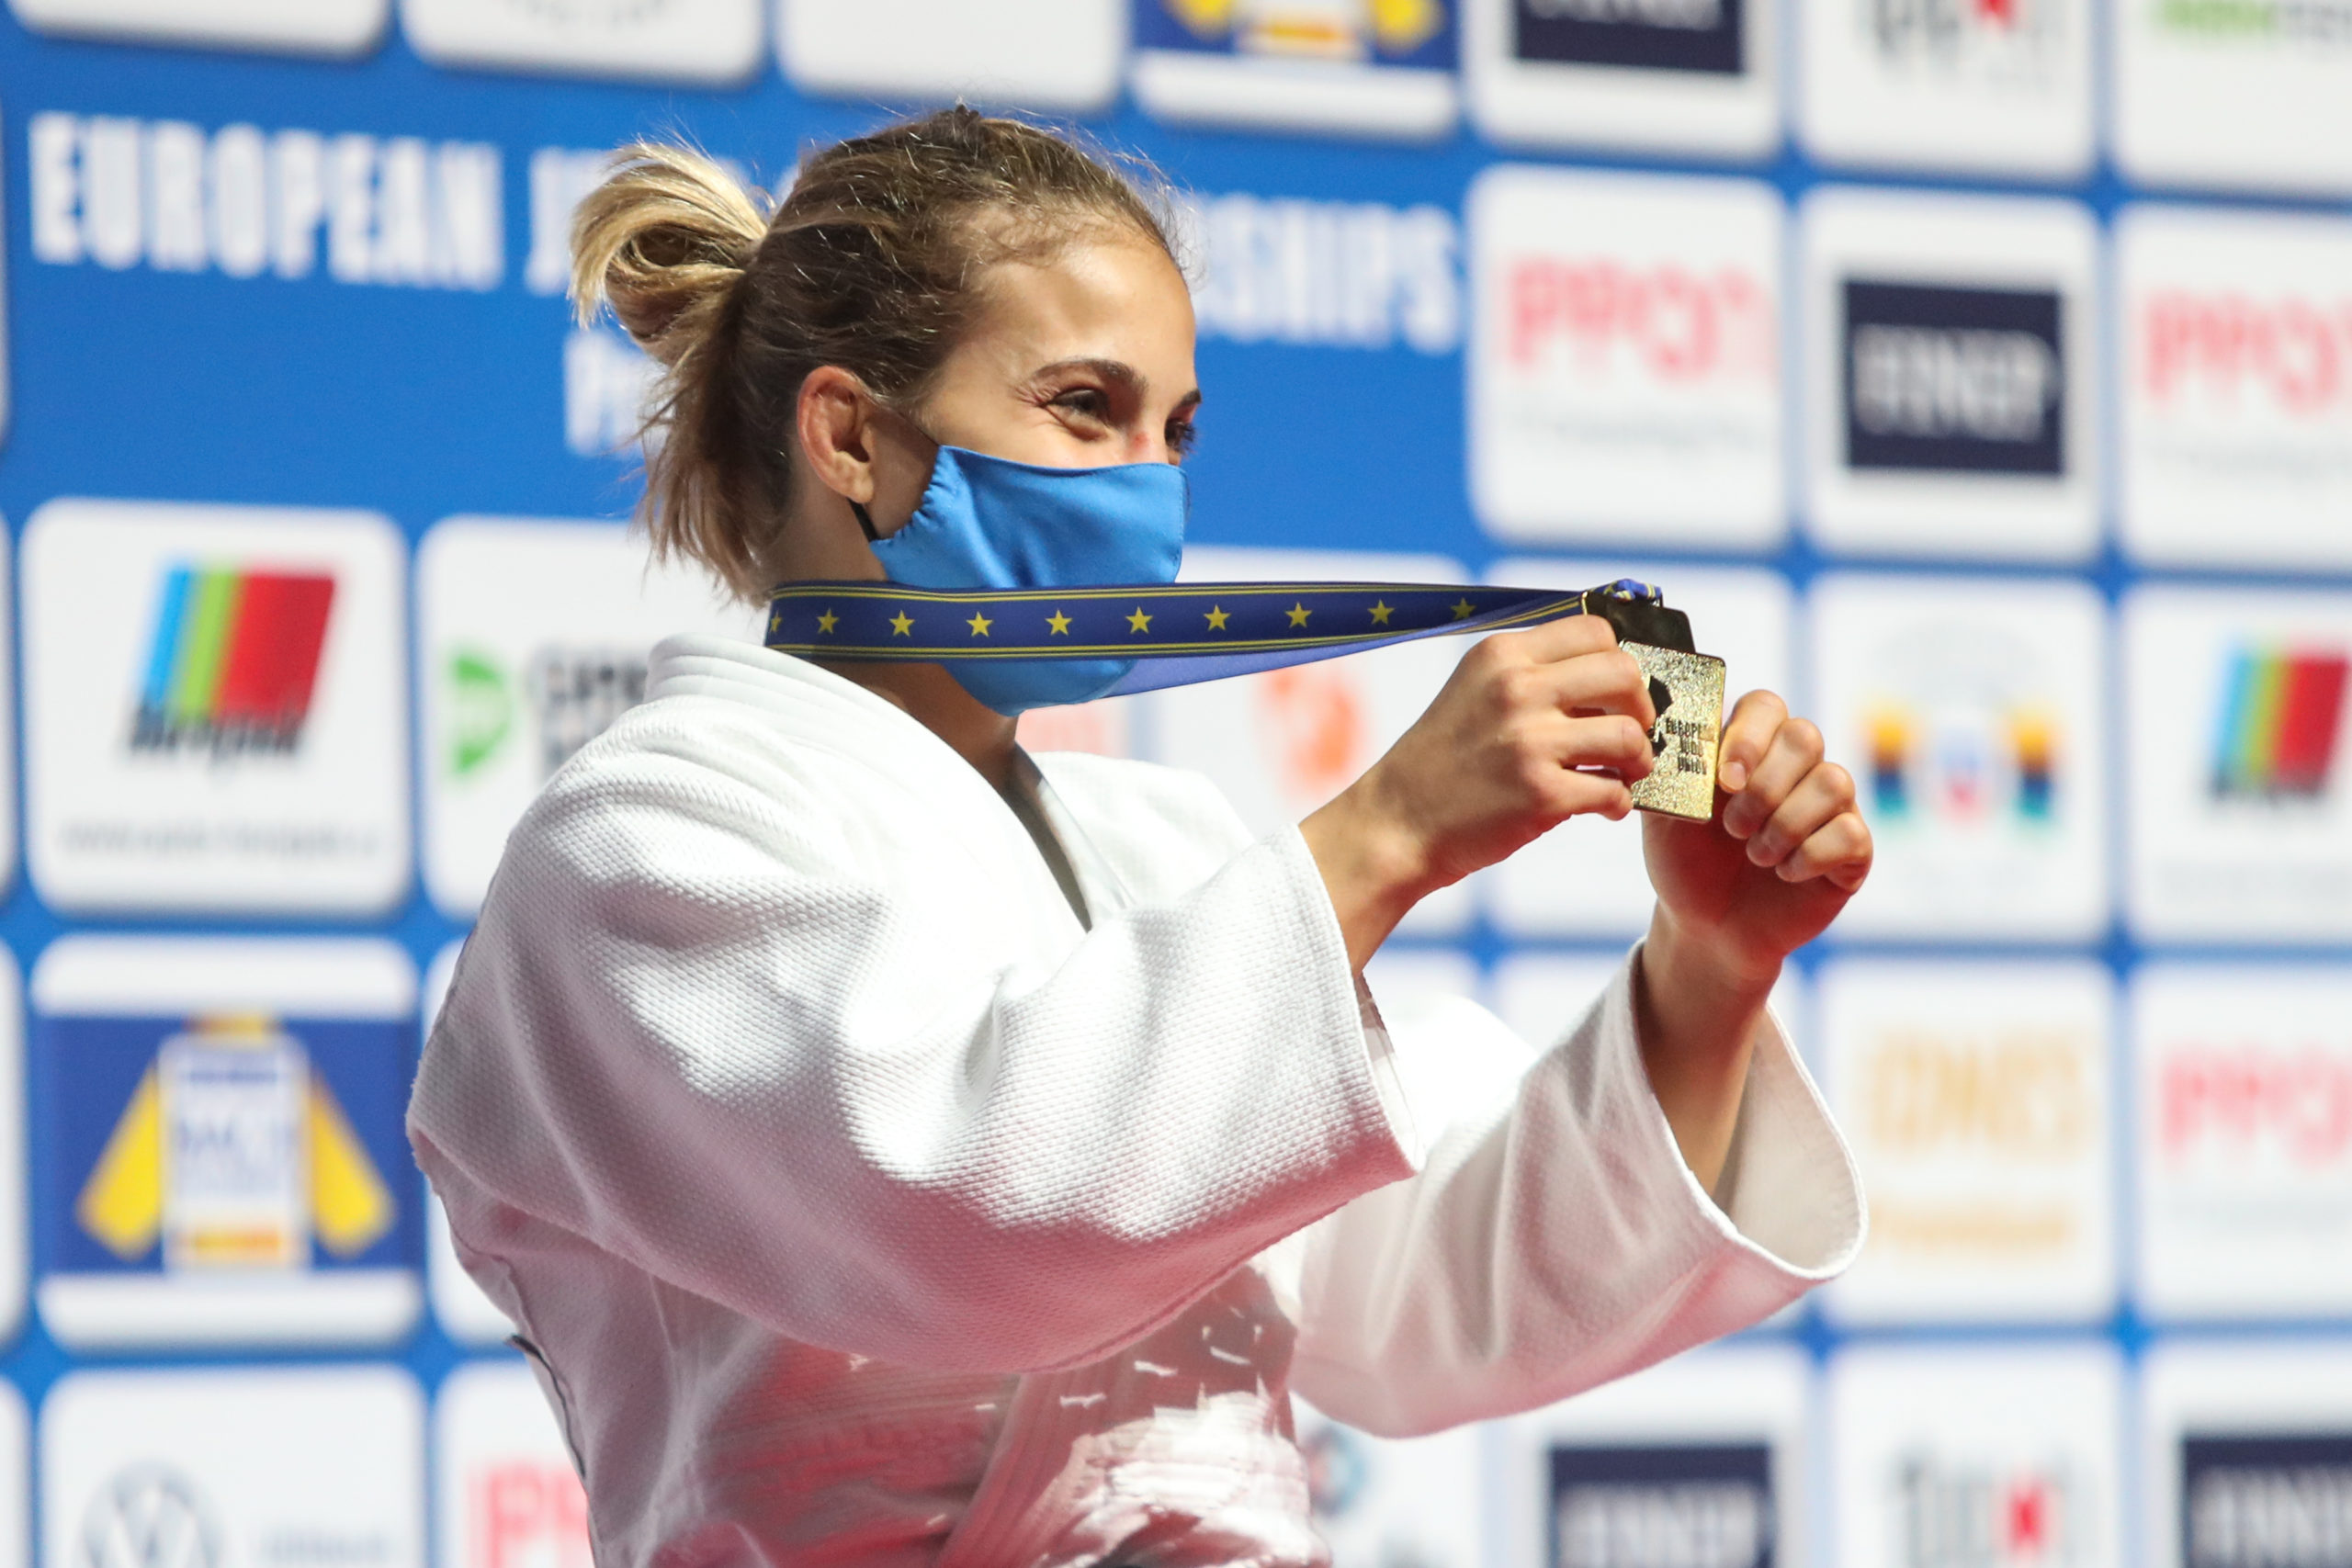 GOLDEN GLORY FOR GIUFFRIDA AFTER SERIES OF DISASTERS